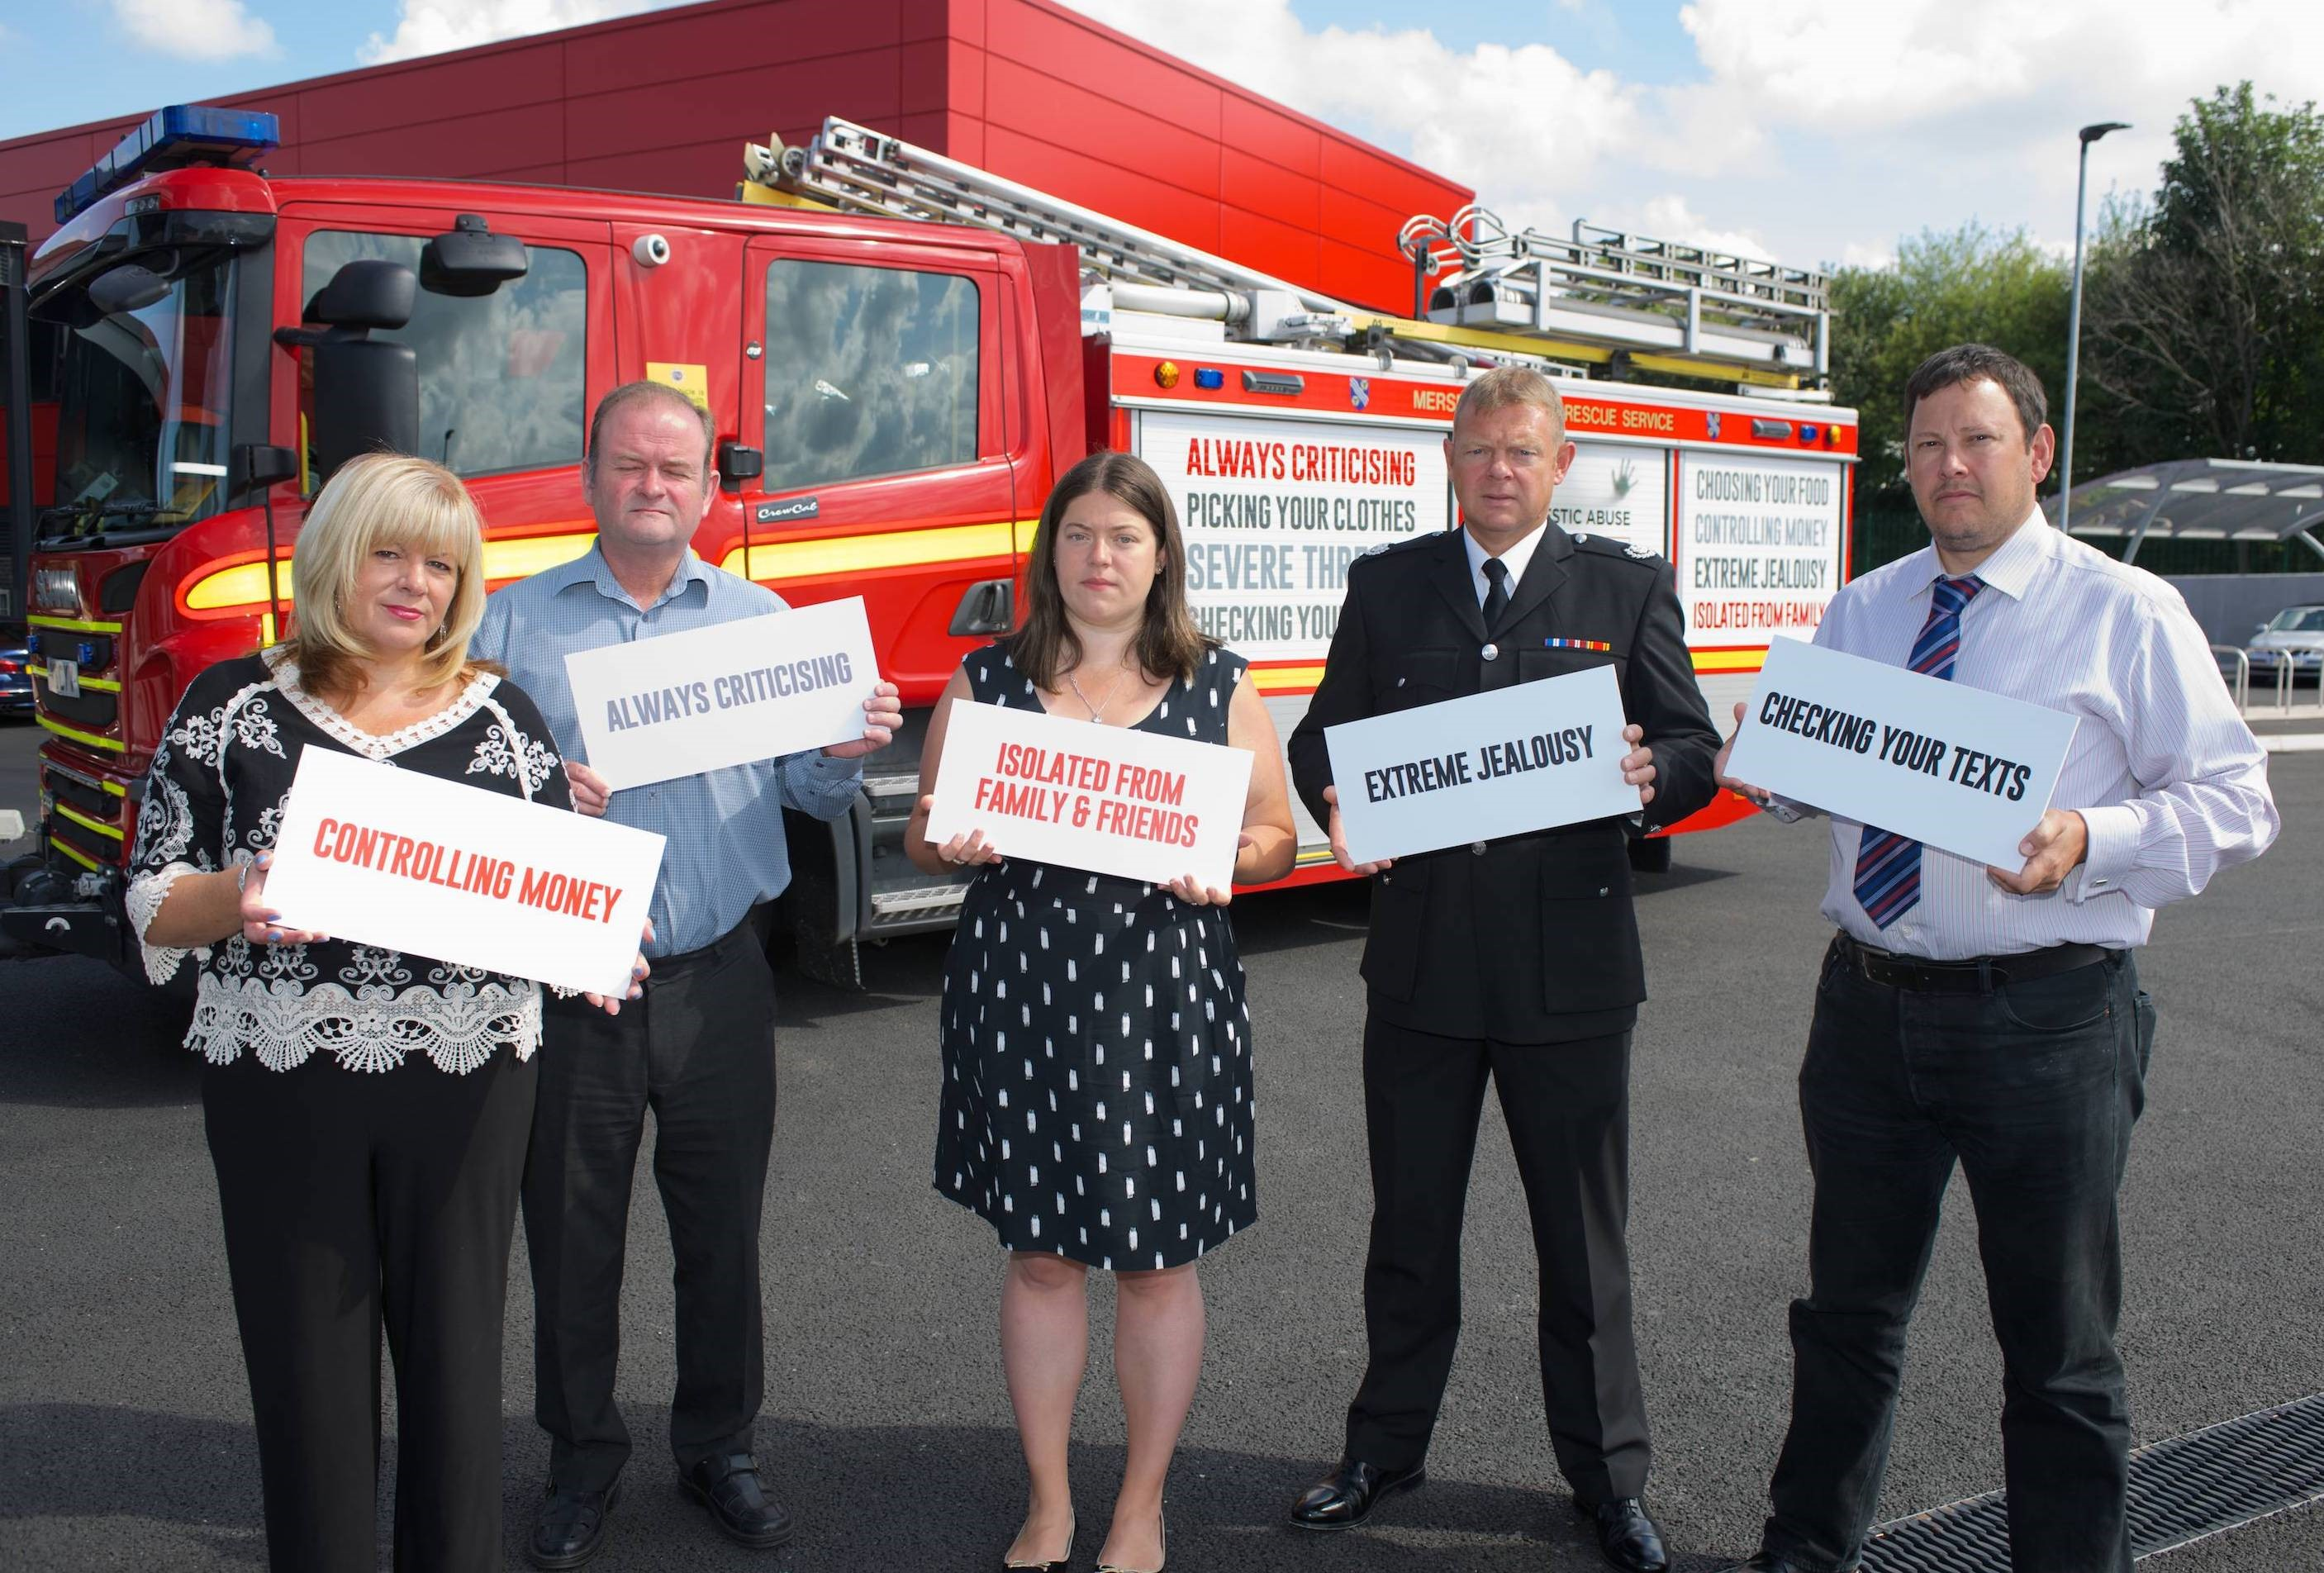 Controlling money, always criticising and being purposely isolated from friends and family are just some of the signs being highlighted as Â'coercive controlÂ' in a new campaign on Domestic Abuse.        The Â'Escape the ControlÂ' campaign, launched across Sefton and Knowlsey,  is a joint initiative...